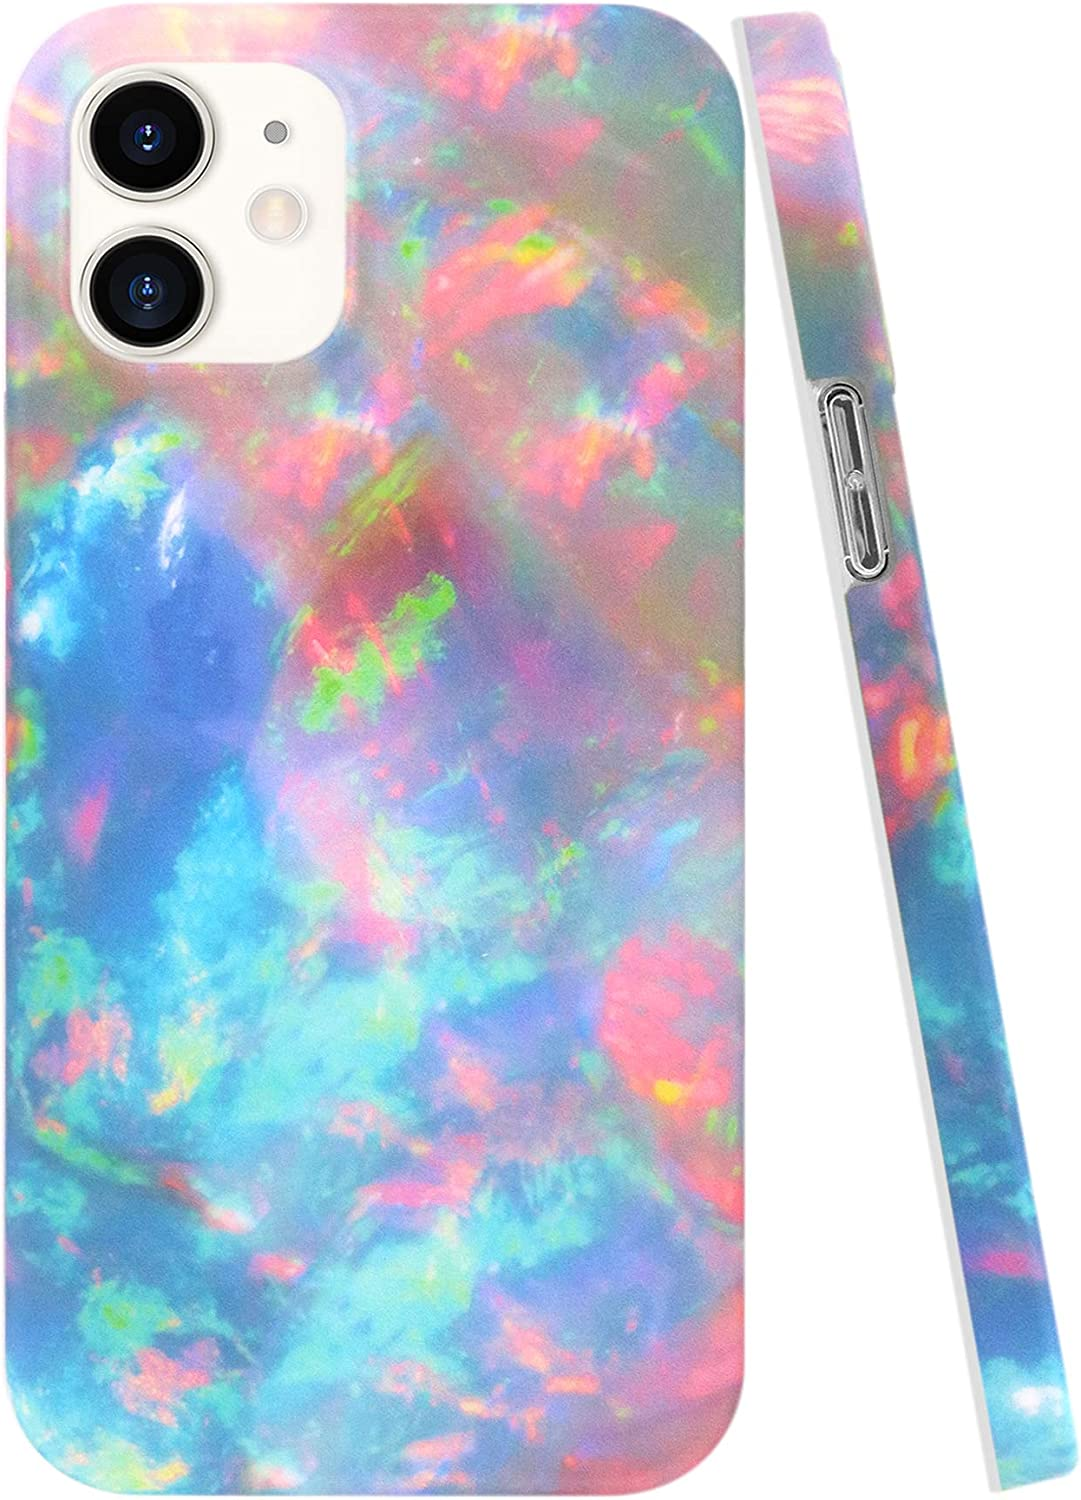 A-Focus Case Compatible with iPhone 12 and i Phone 12 Case Opal, Green Blue Opal Marble IMD Shock Proof Flexible TPU Rubber Cover Case for 12 Pro / 12 2020 Release 6.1 inch Matte Colorful